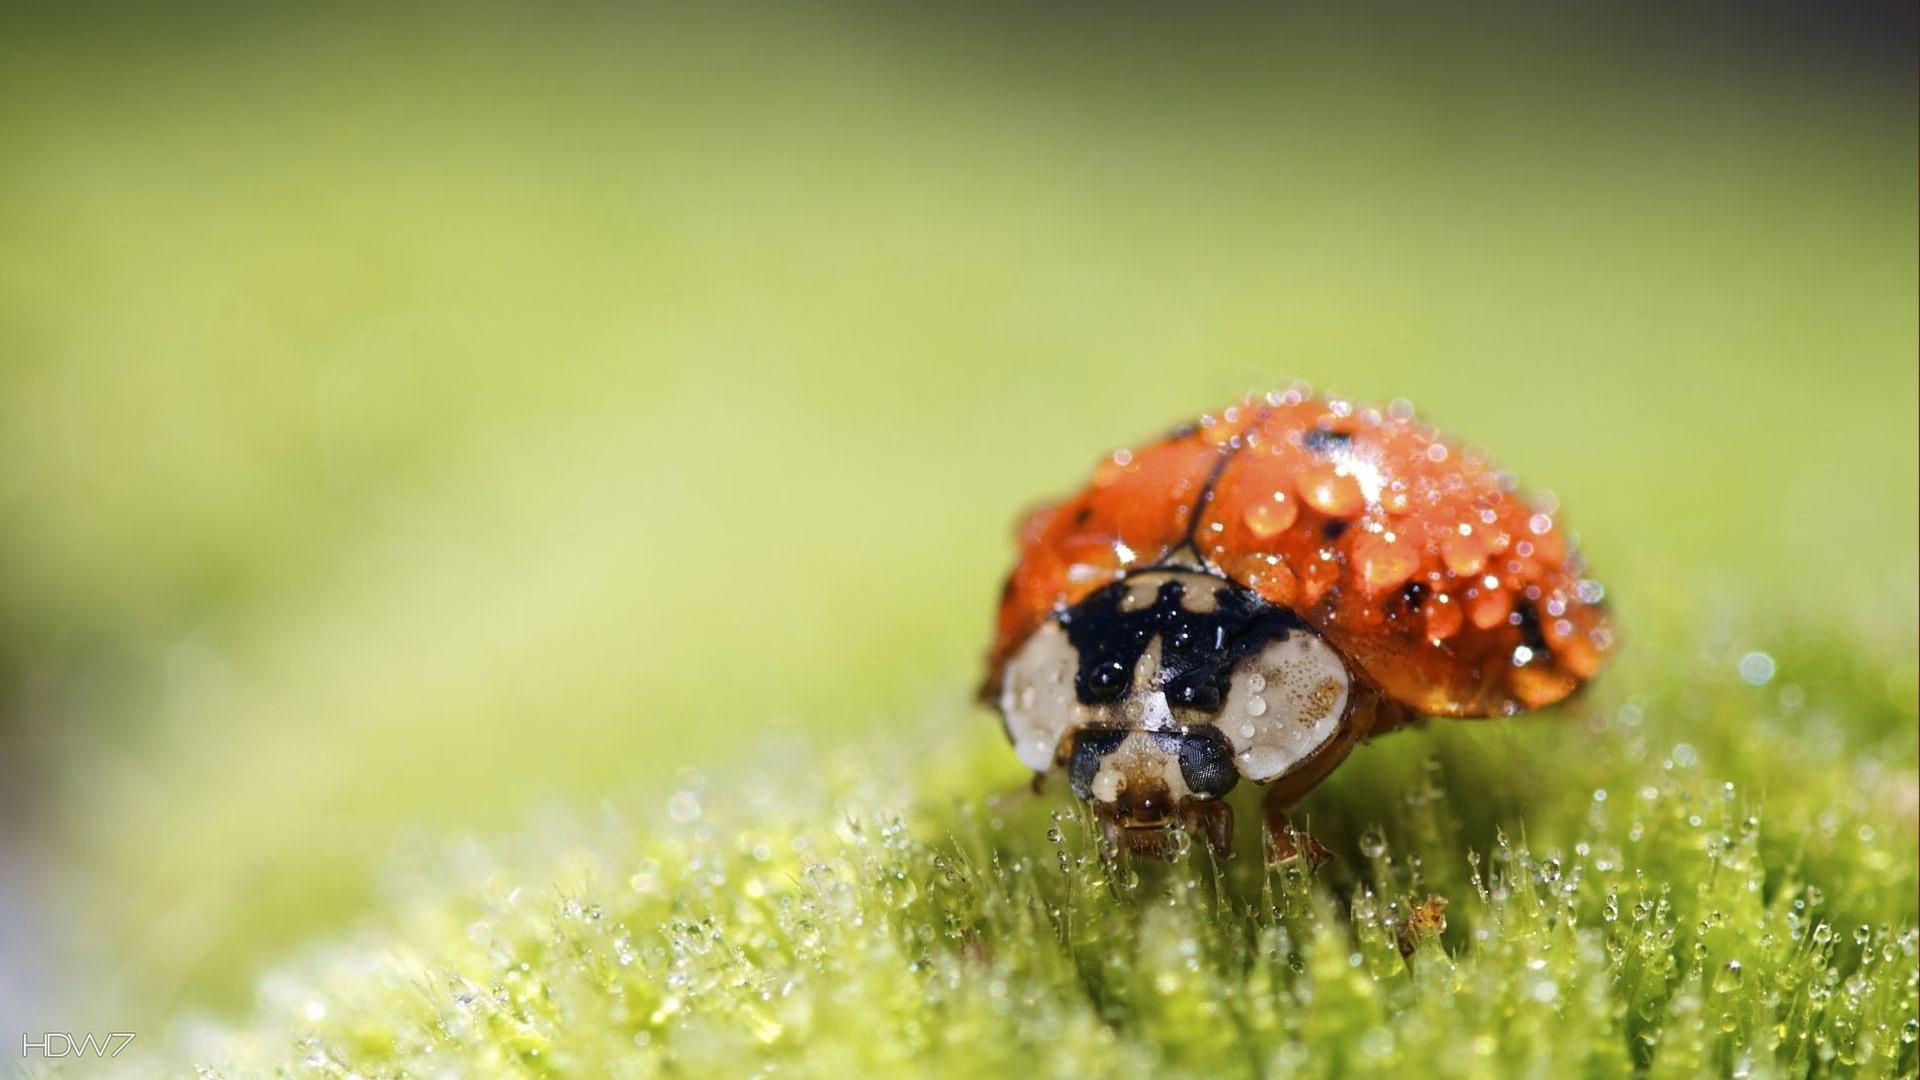 Res: 1920x1080, wet lady bug nature animal small cute